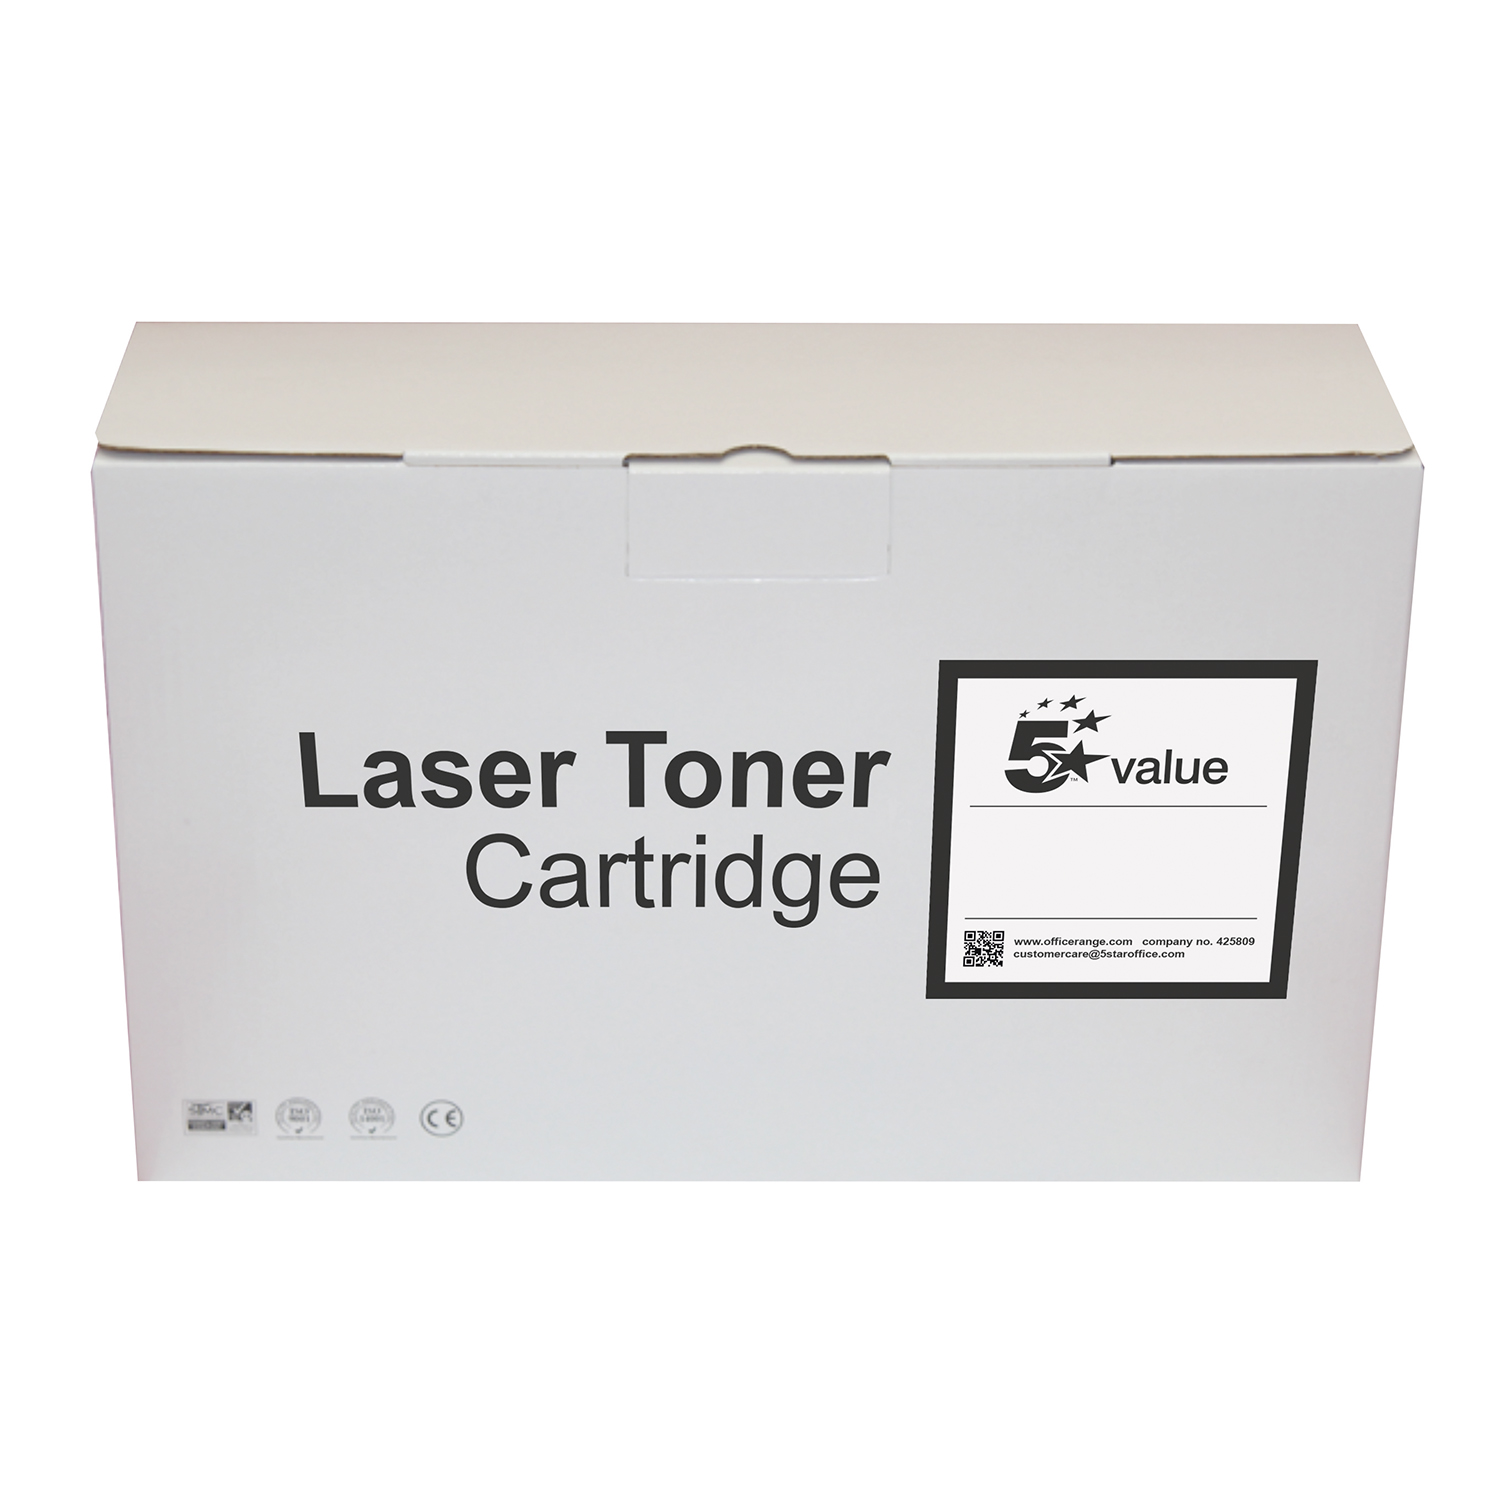 5 Star Value Reman Laser Toner Cartridge Page Life 4000pp Black [Canon FX10 0263B002 Alternative]